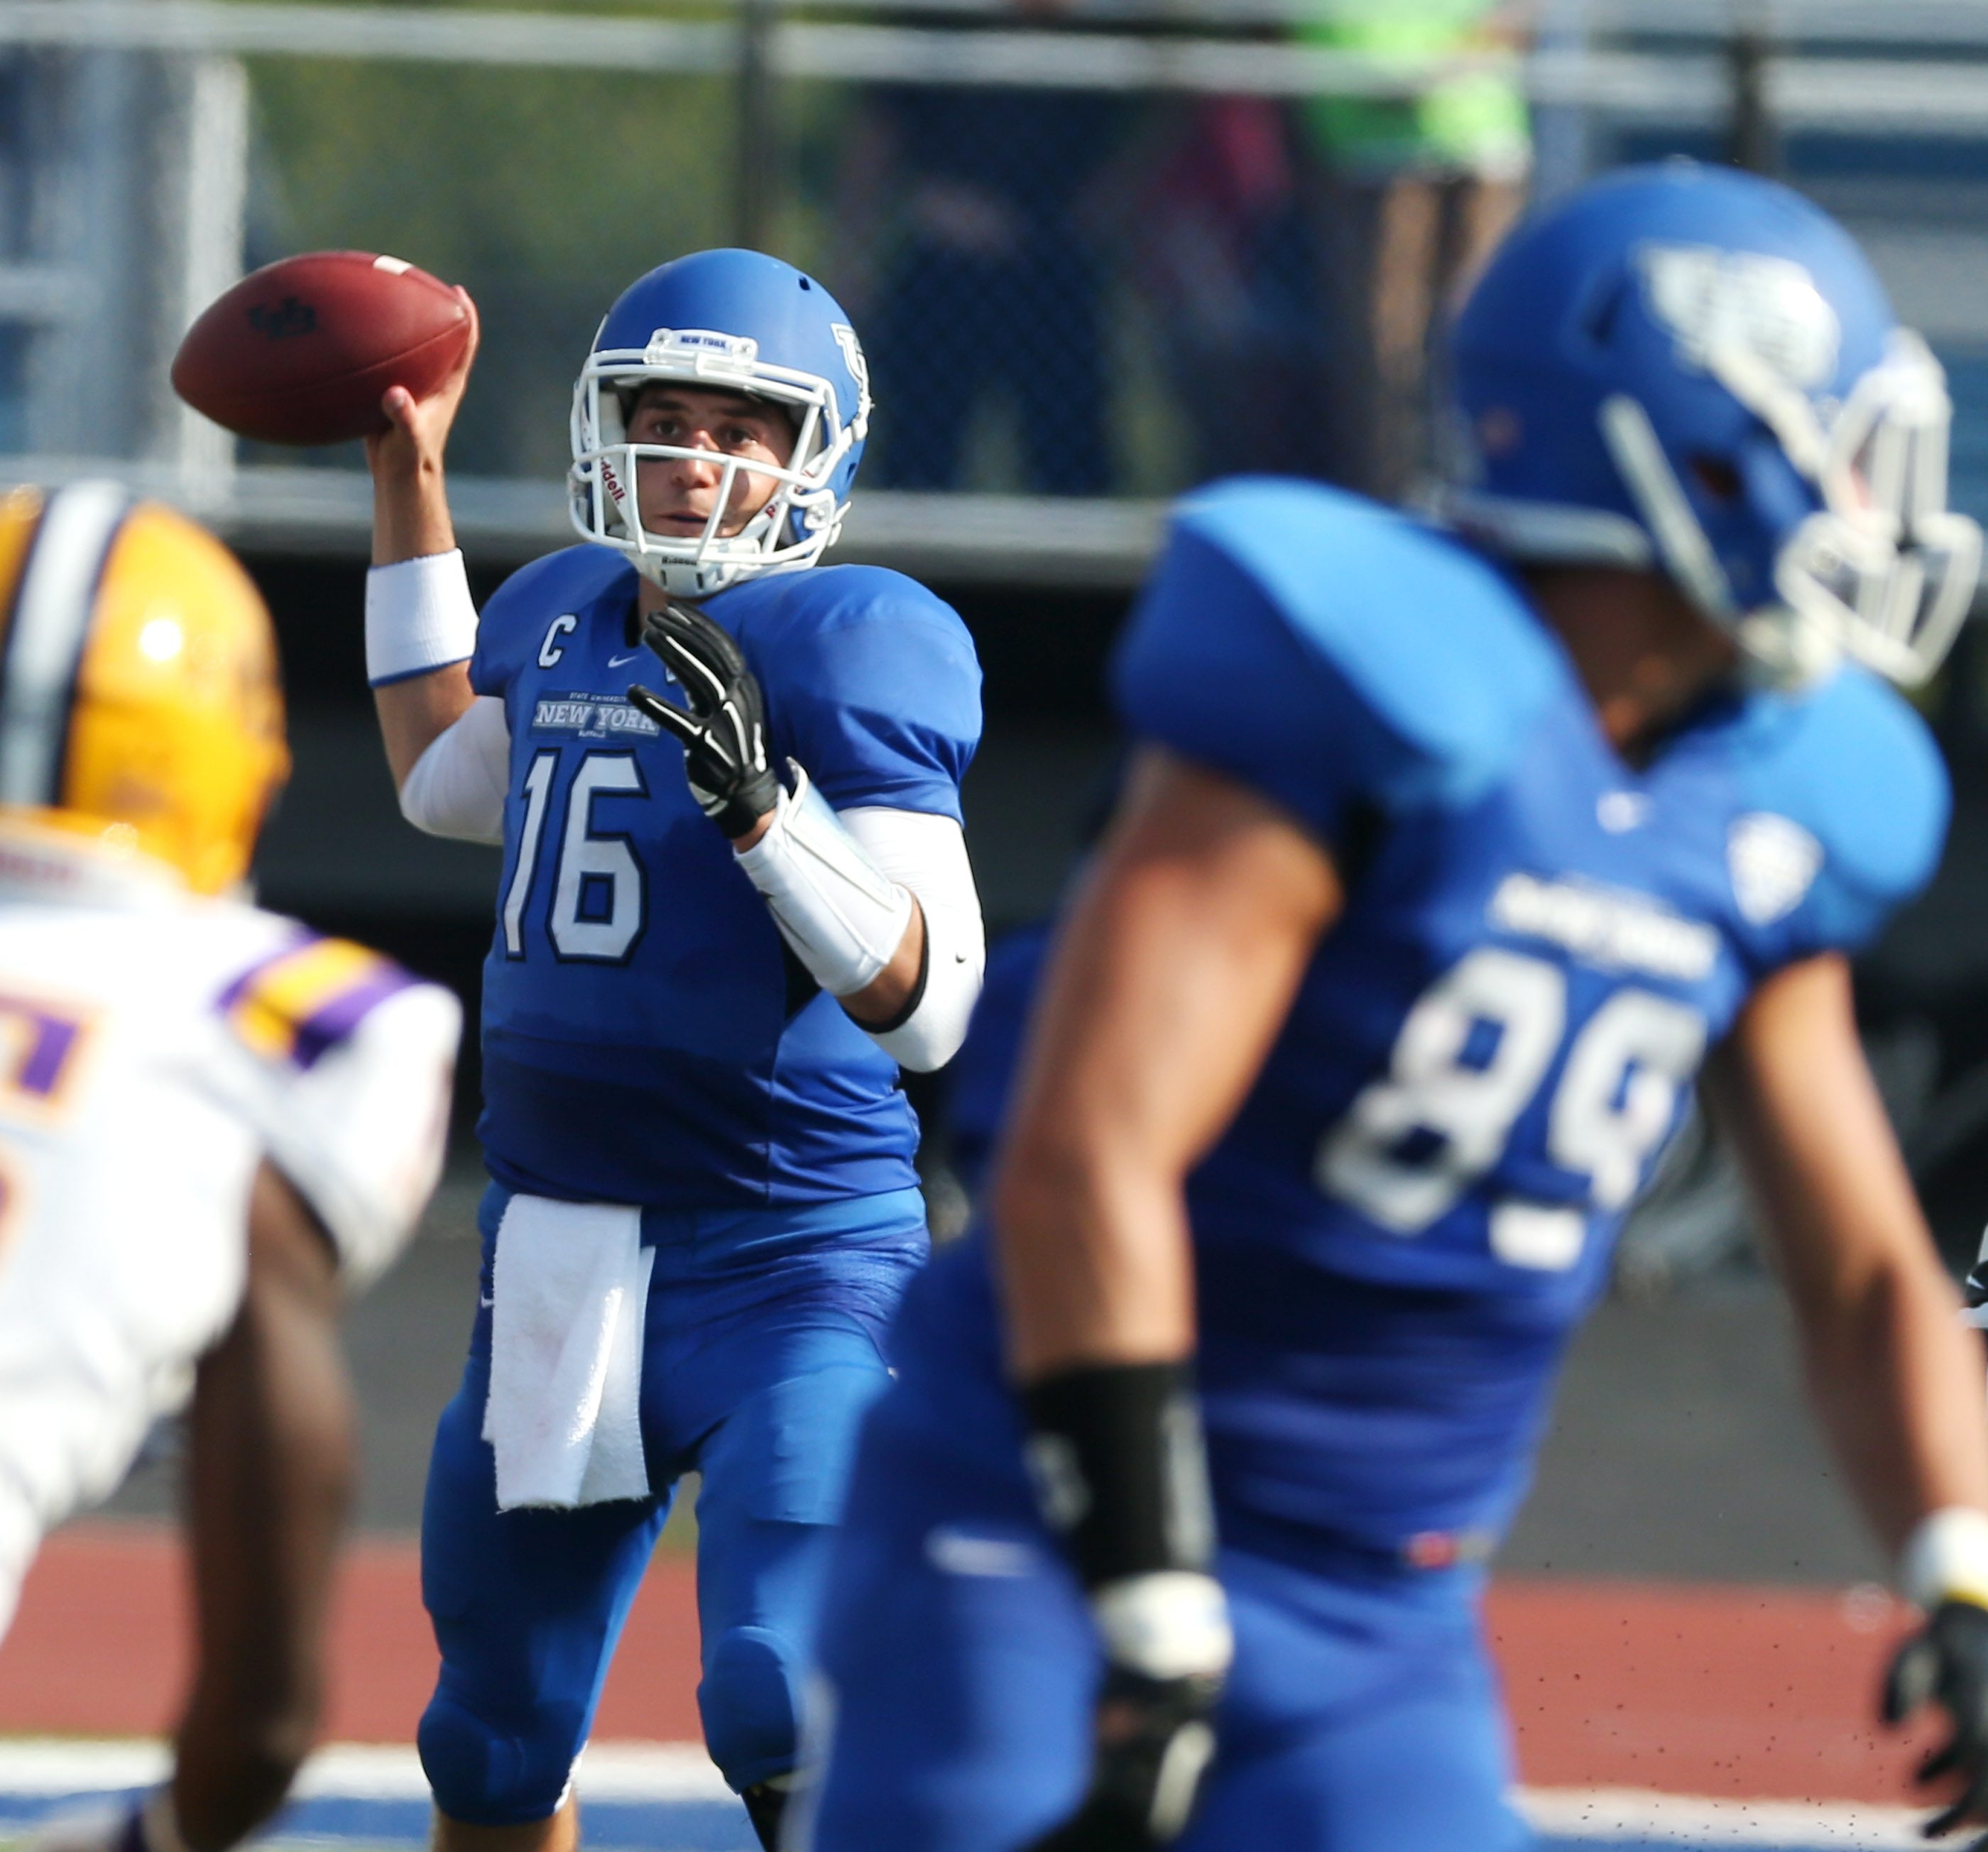 Senior quarterback Joe Licata completed 20 of 26 passes for 246 yards and two touchdowns in UB's opening win.